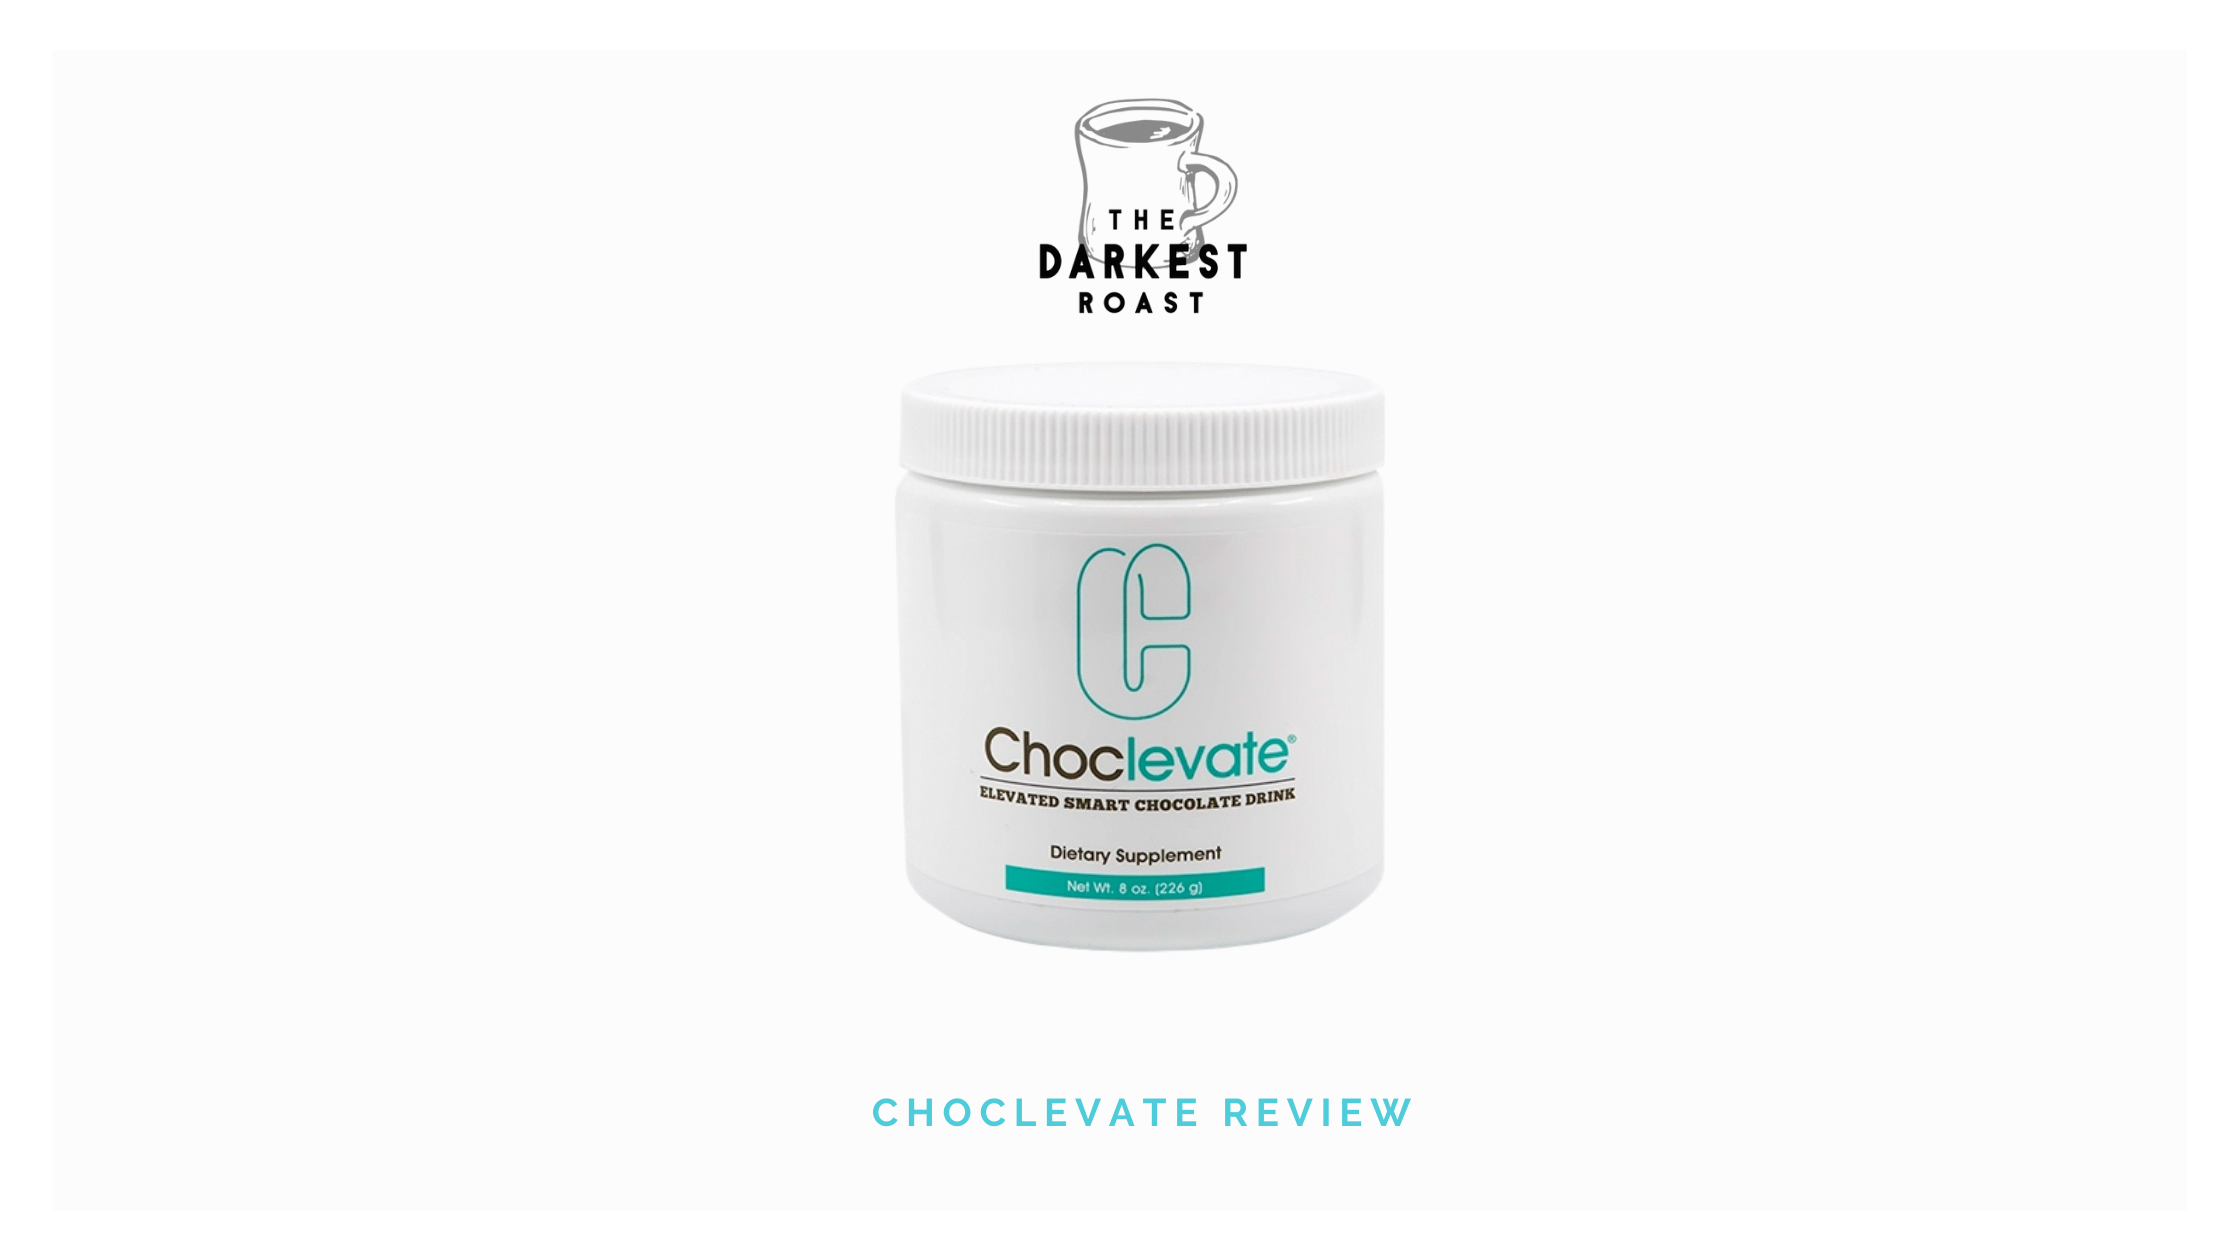 Choclevate review